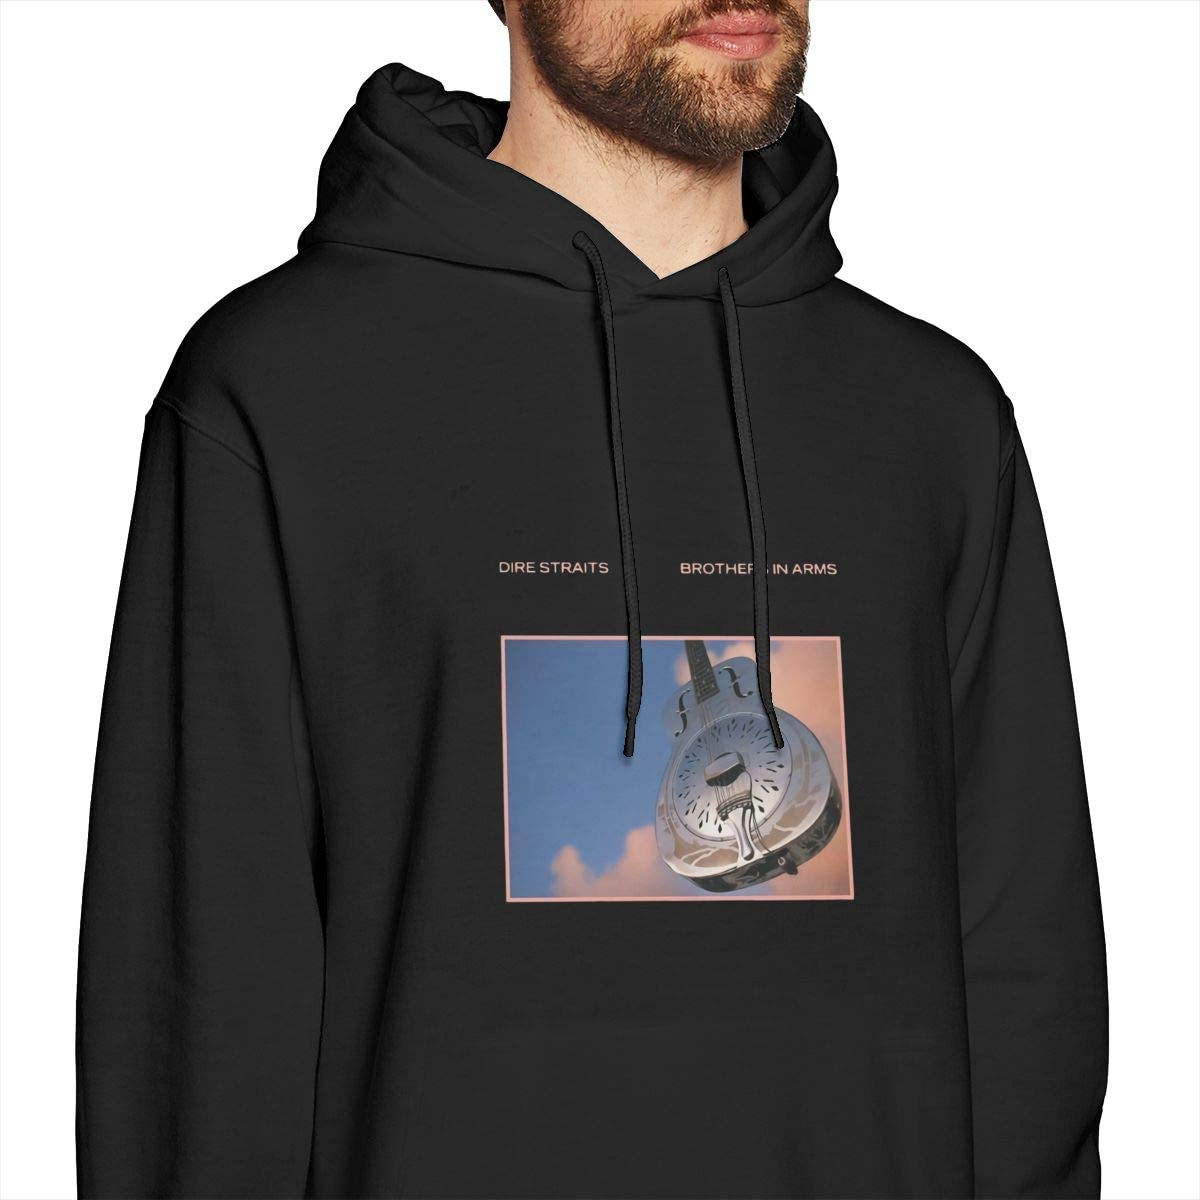 Mens Dire Straits-Brothers in Arms Sweatshirts Hoodie Pullover